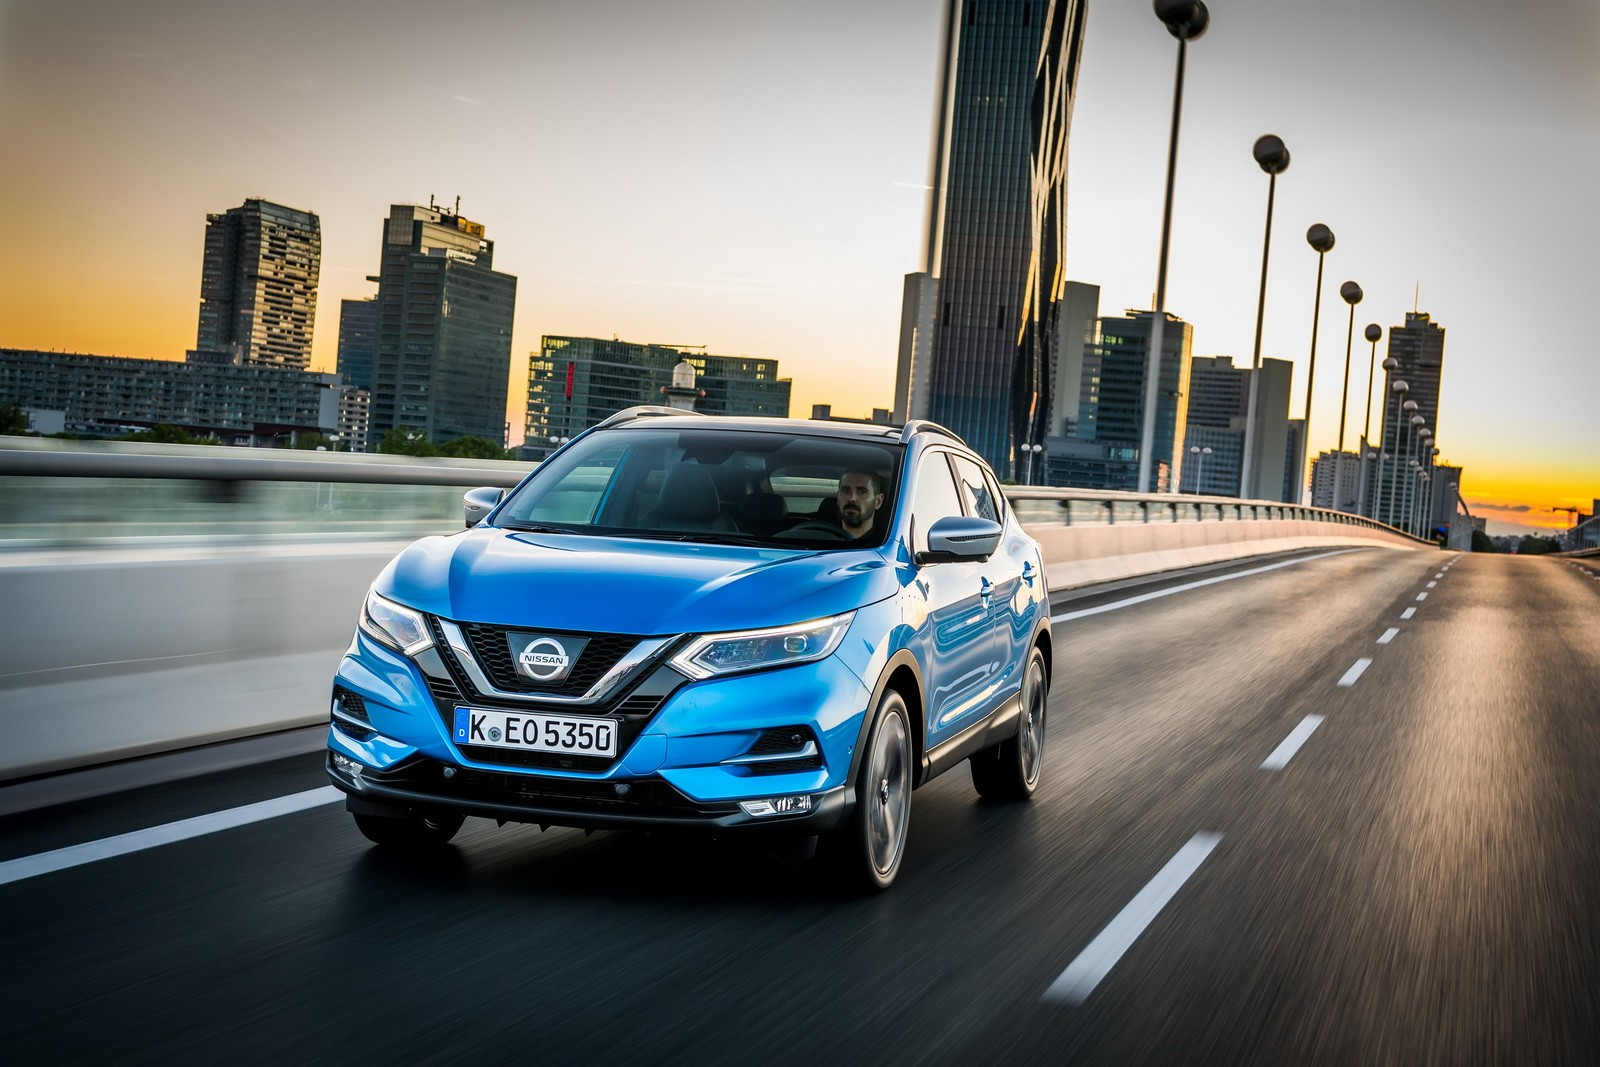 2017 Nissan Qashqai Facelift Will Go On Sale In Europe In ...